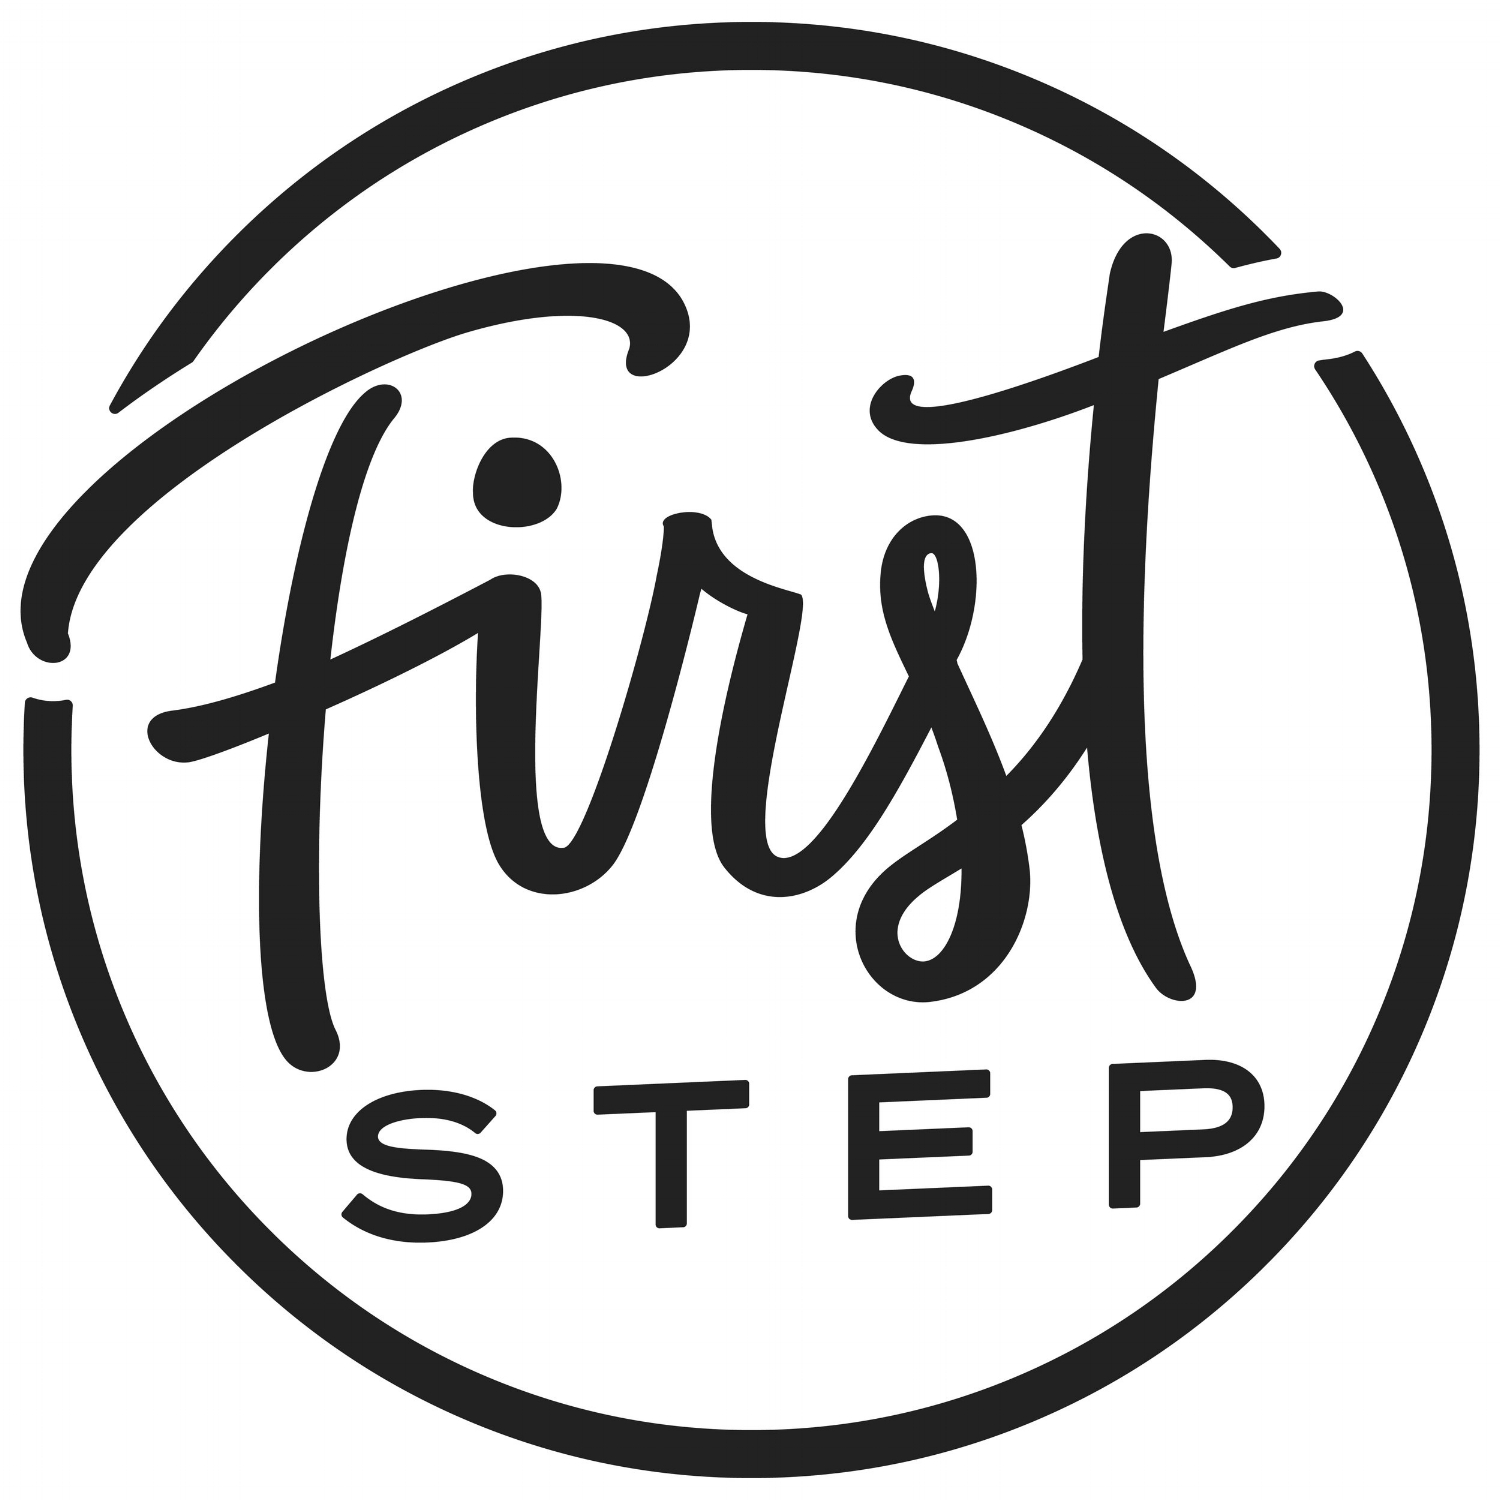 FirstStep__Side2Test.jpg